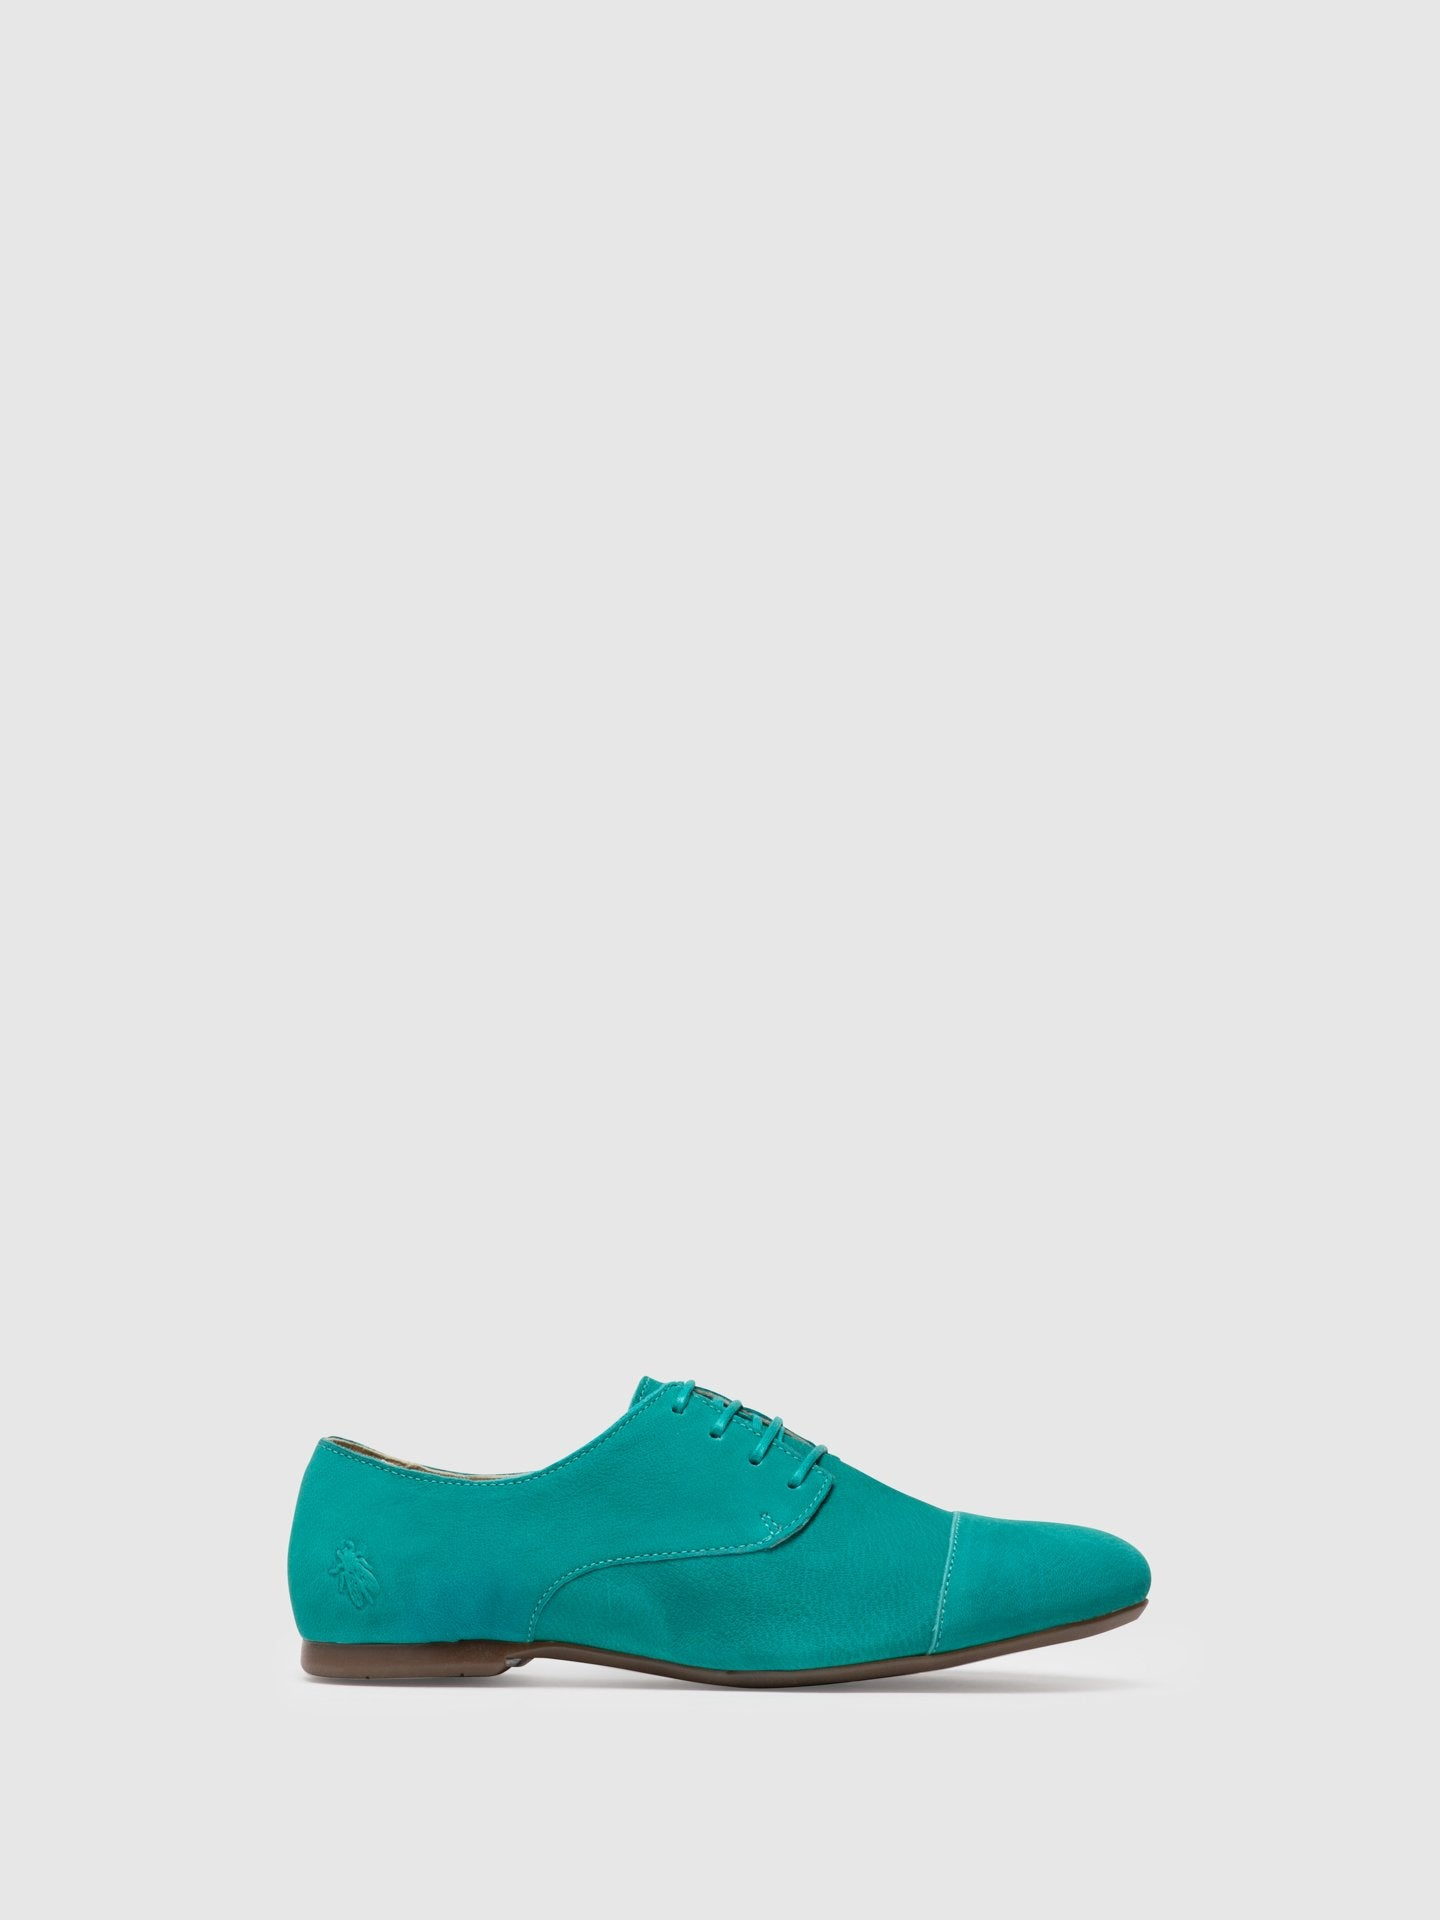 Fly London Green Derby Shoes